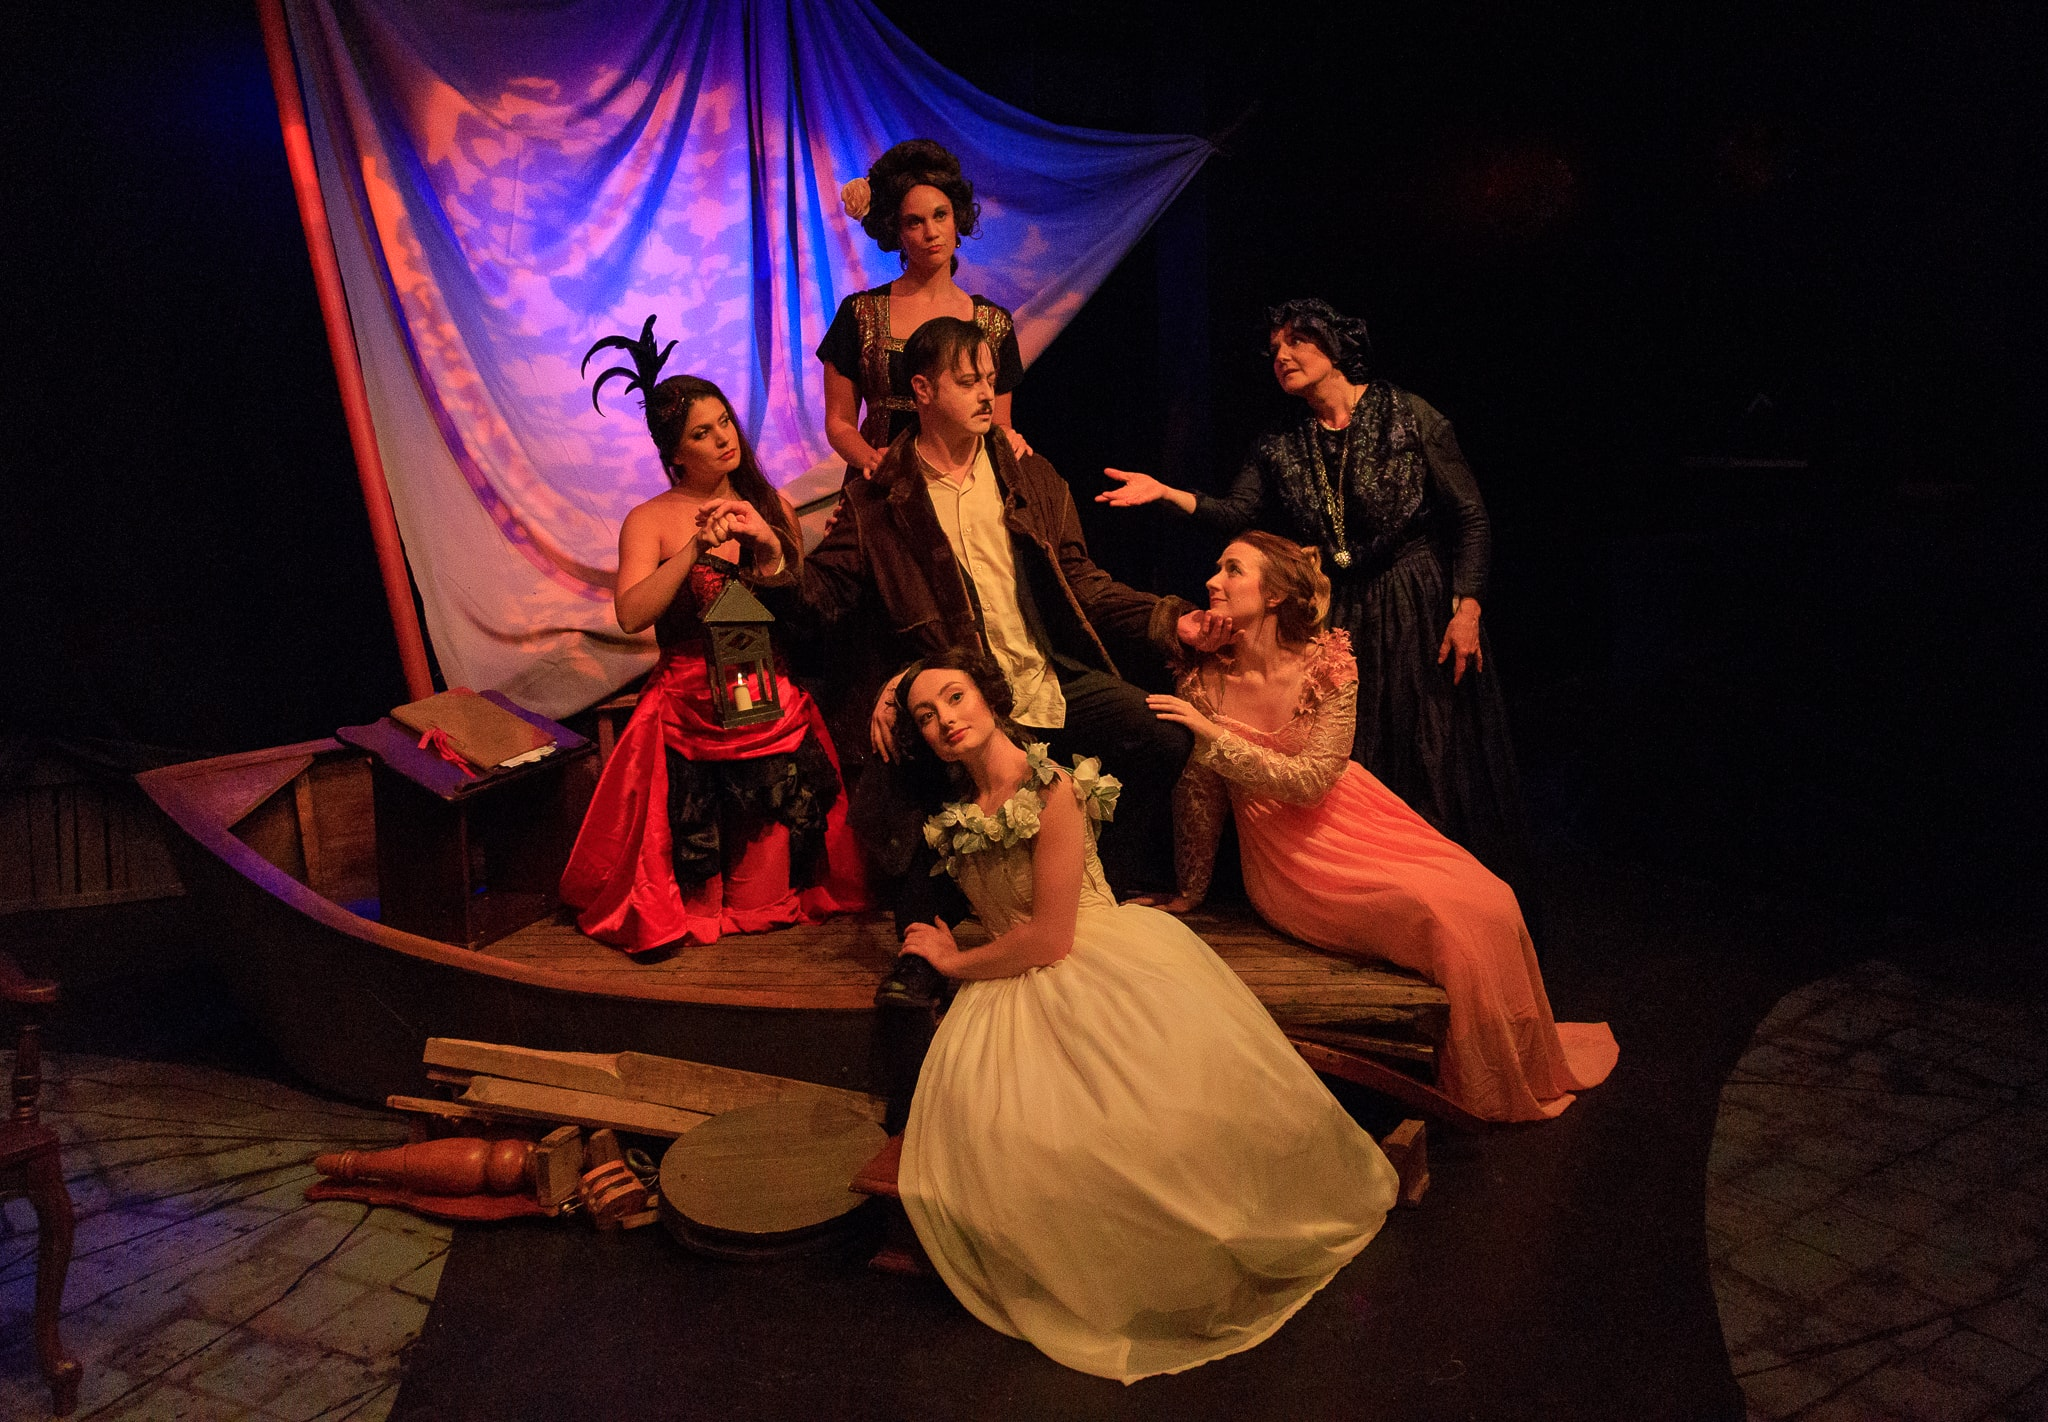 Clockwise from Center: Katherine Riddle as Mother, Jennifer Pagnard as Muddy, Erin Granfield as Elmira, Sara Hurley as Virginia, Stephen Gregory Smith as Edgar Allan Poe, and Mary Kate Brouillet as the Whore in Nevermore. Photo Credit: Keith Waters/Kx Photography